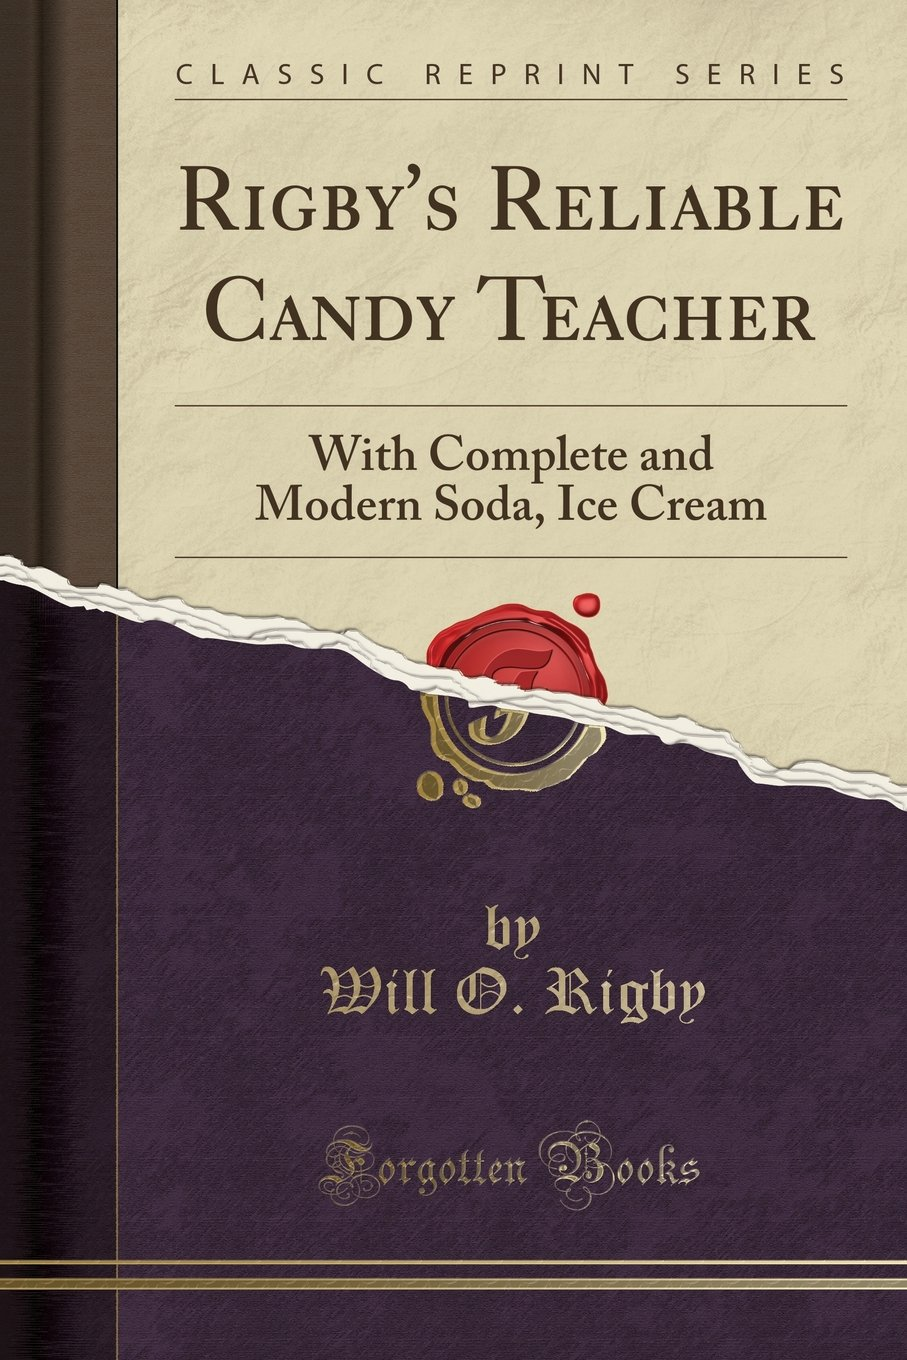 Rigby's Reliable Candy Teacher: With Complete and Modern Soda, Ice Cream  (Classic Reprint): Will O. Rigby: 9780282270988: Amazon.com: Books